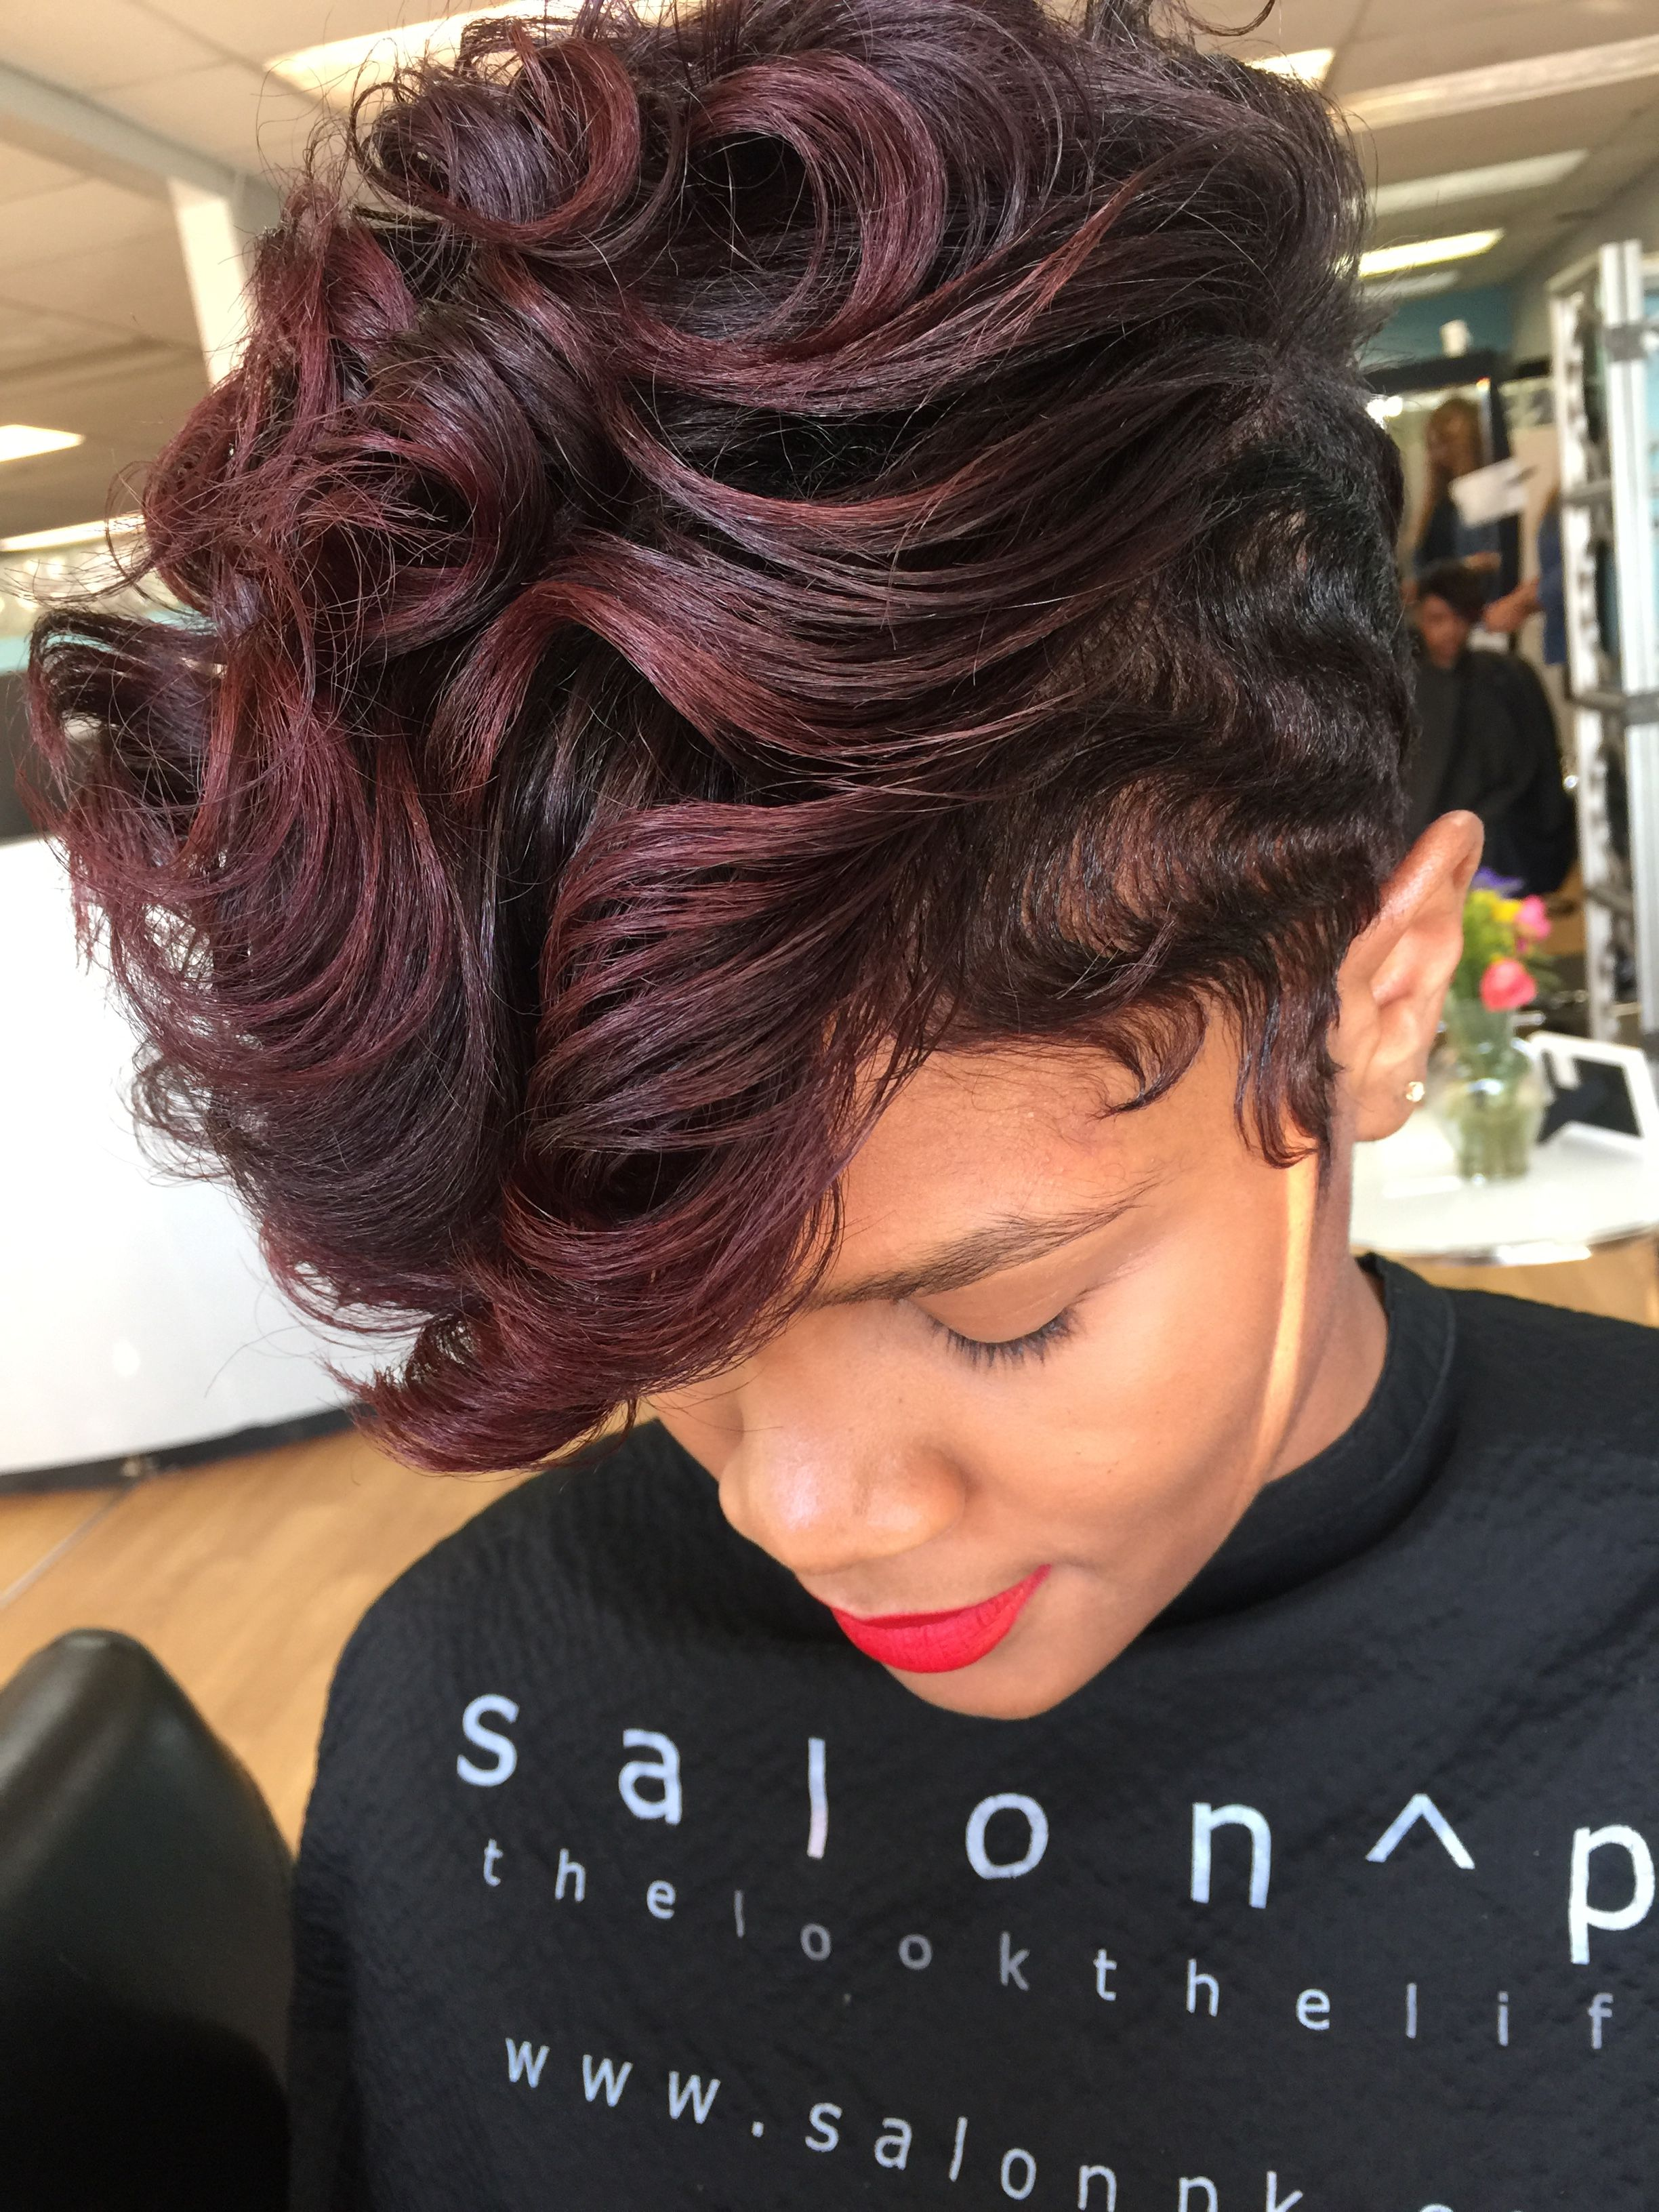 Salon Hairstyles For Short Hair Red Hair Pintrest Multicultural Hair Salon Jacksonville Florida